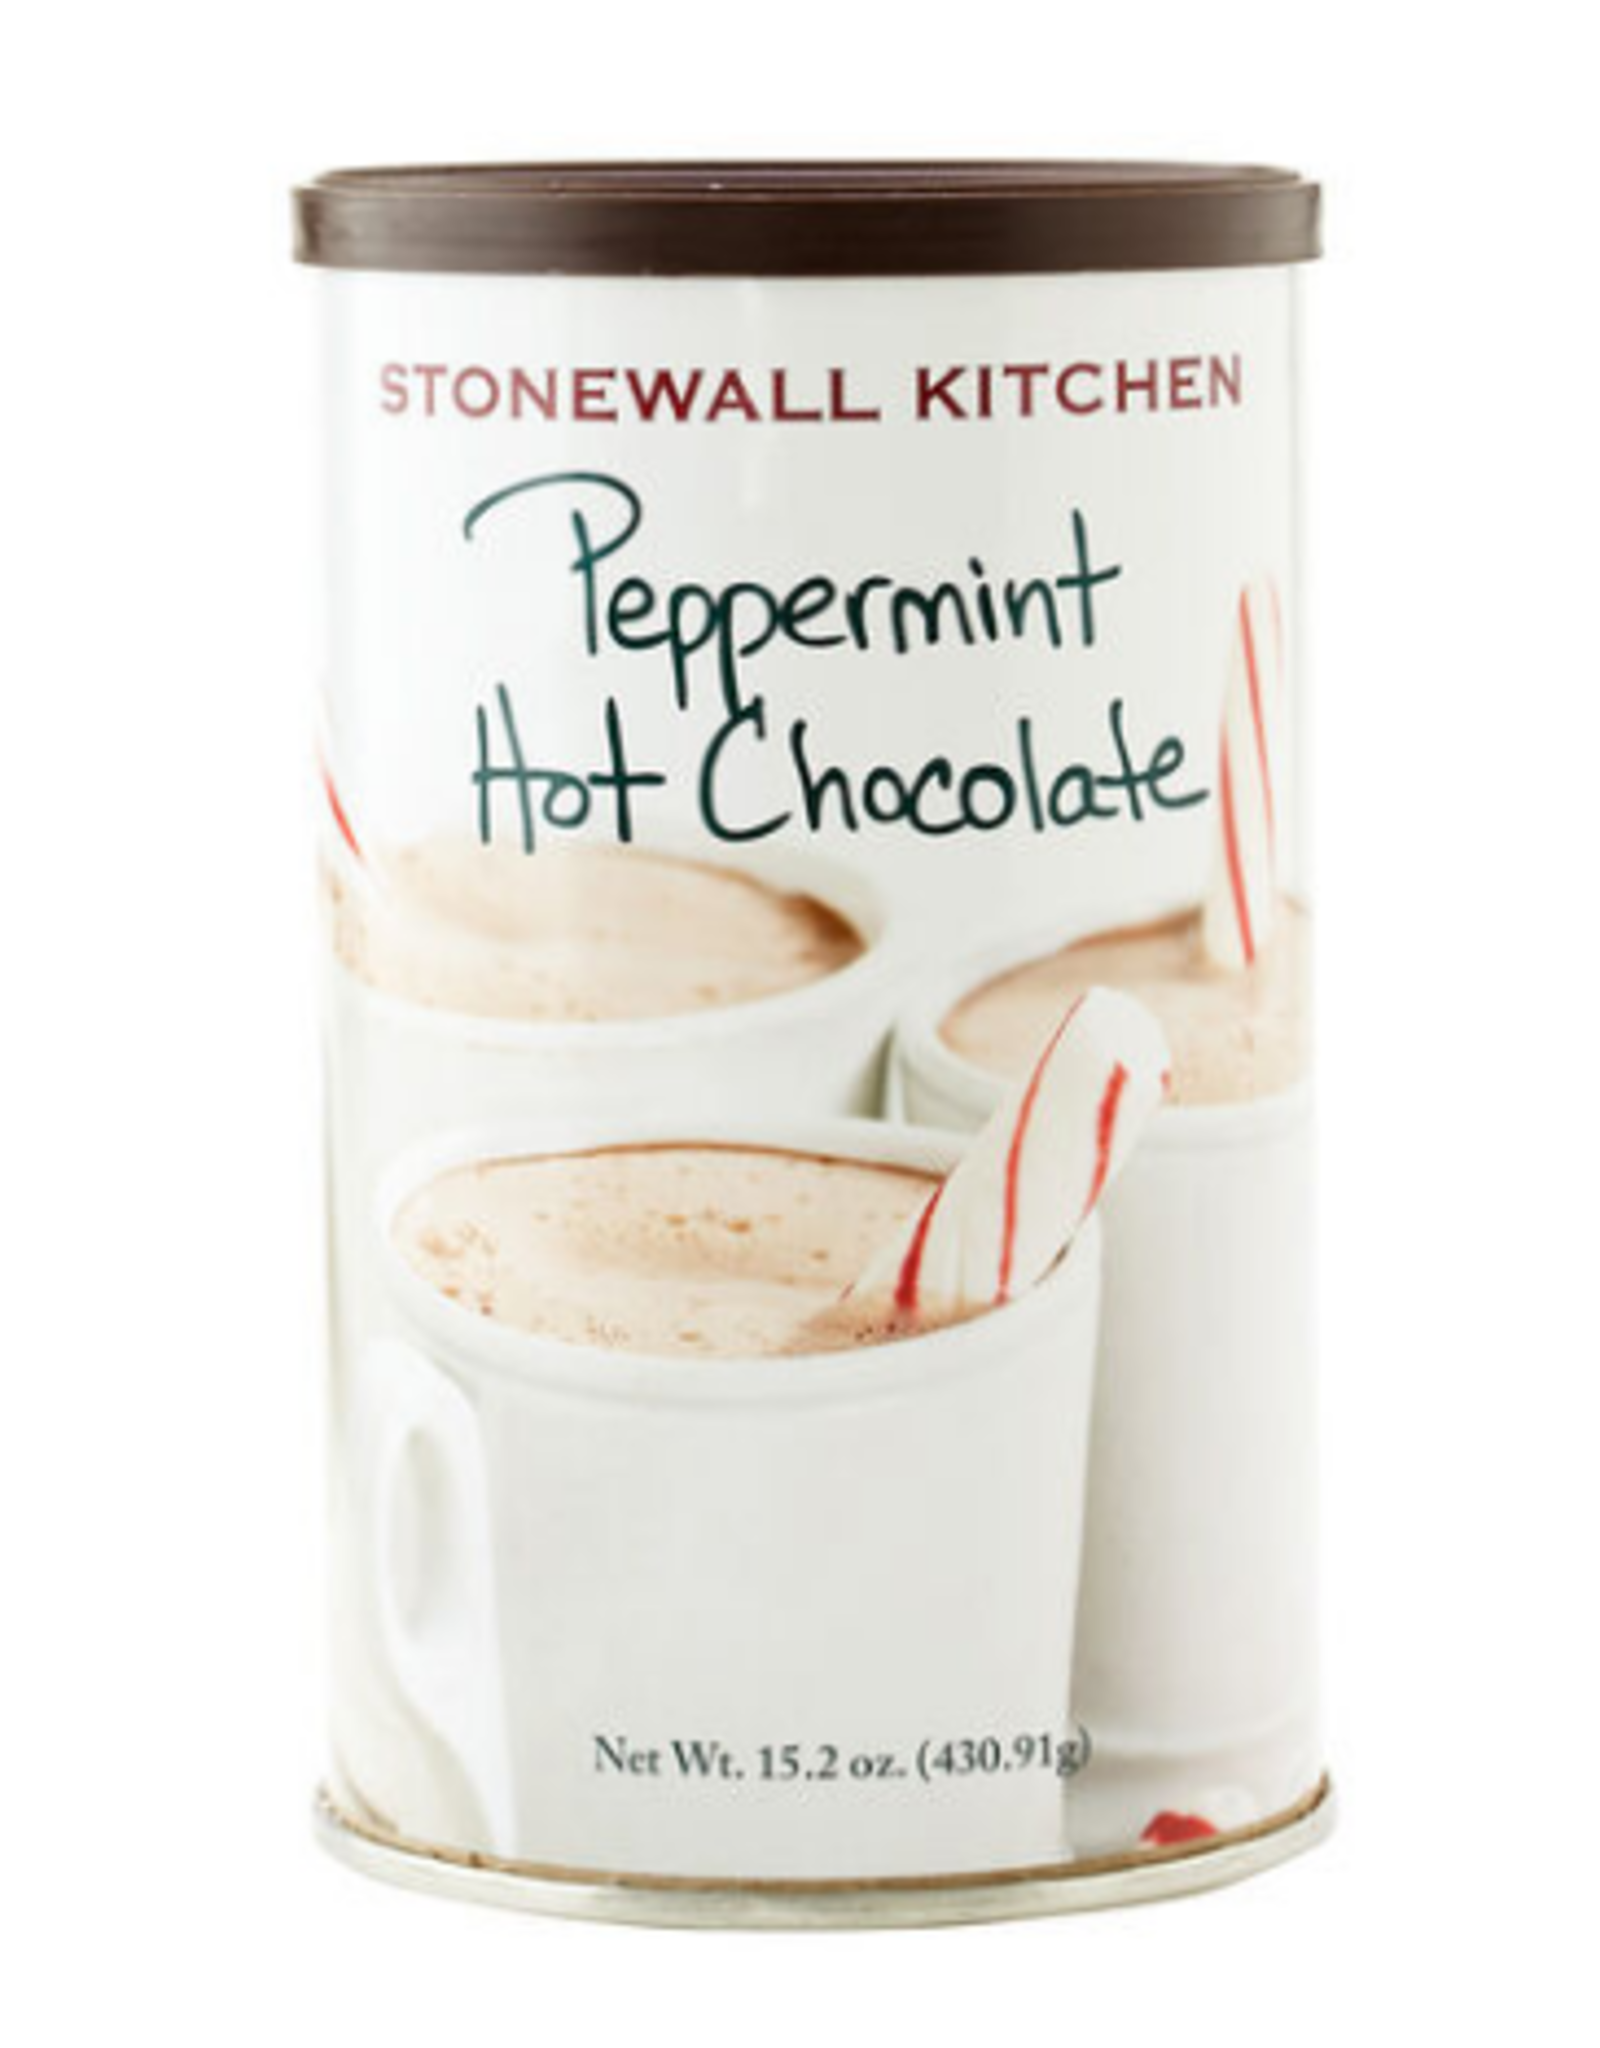 Stonewall Kitchen Holiday Peppermint Hot Chocolate